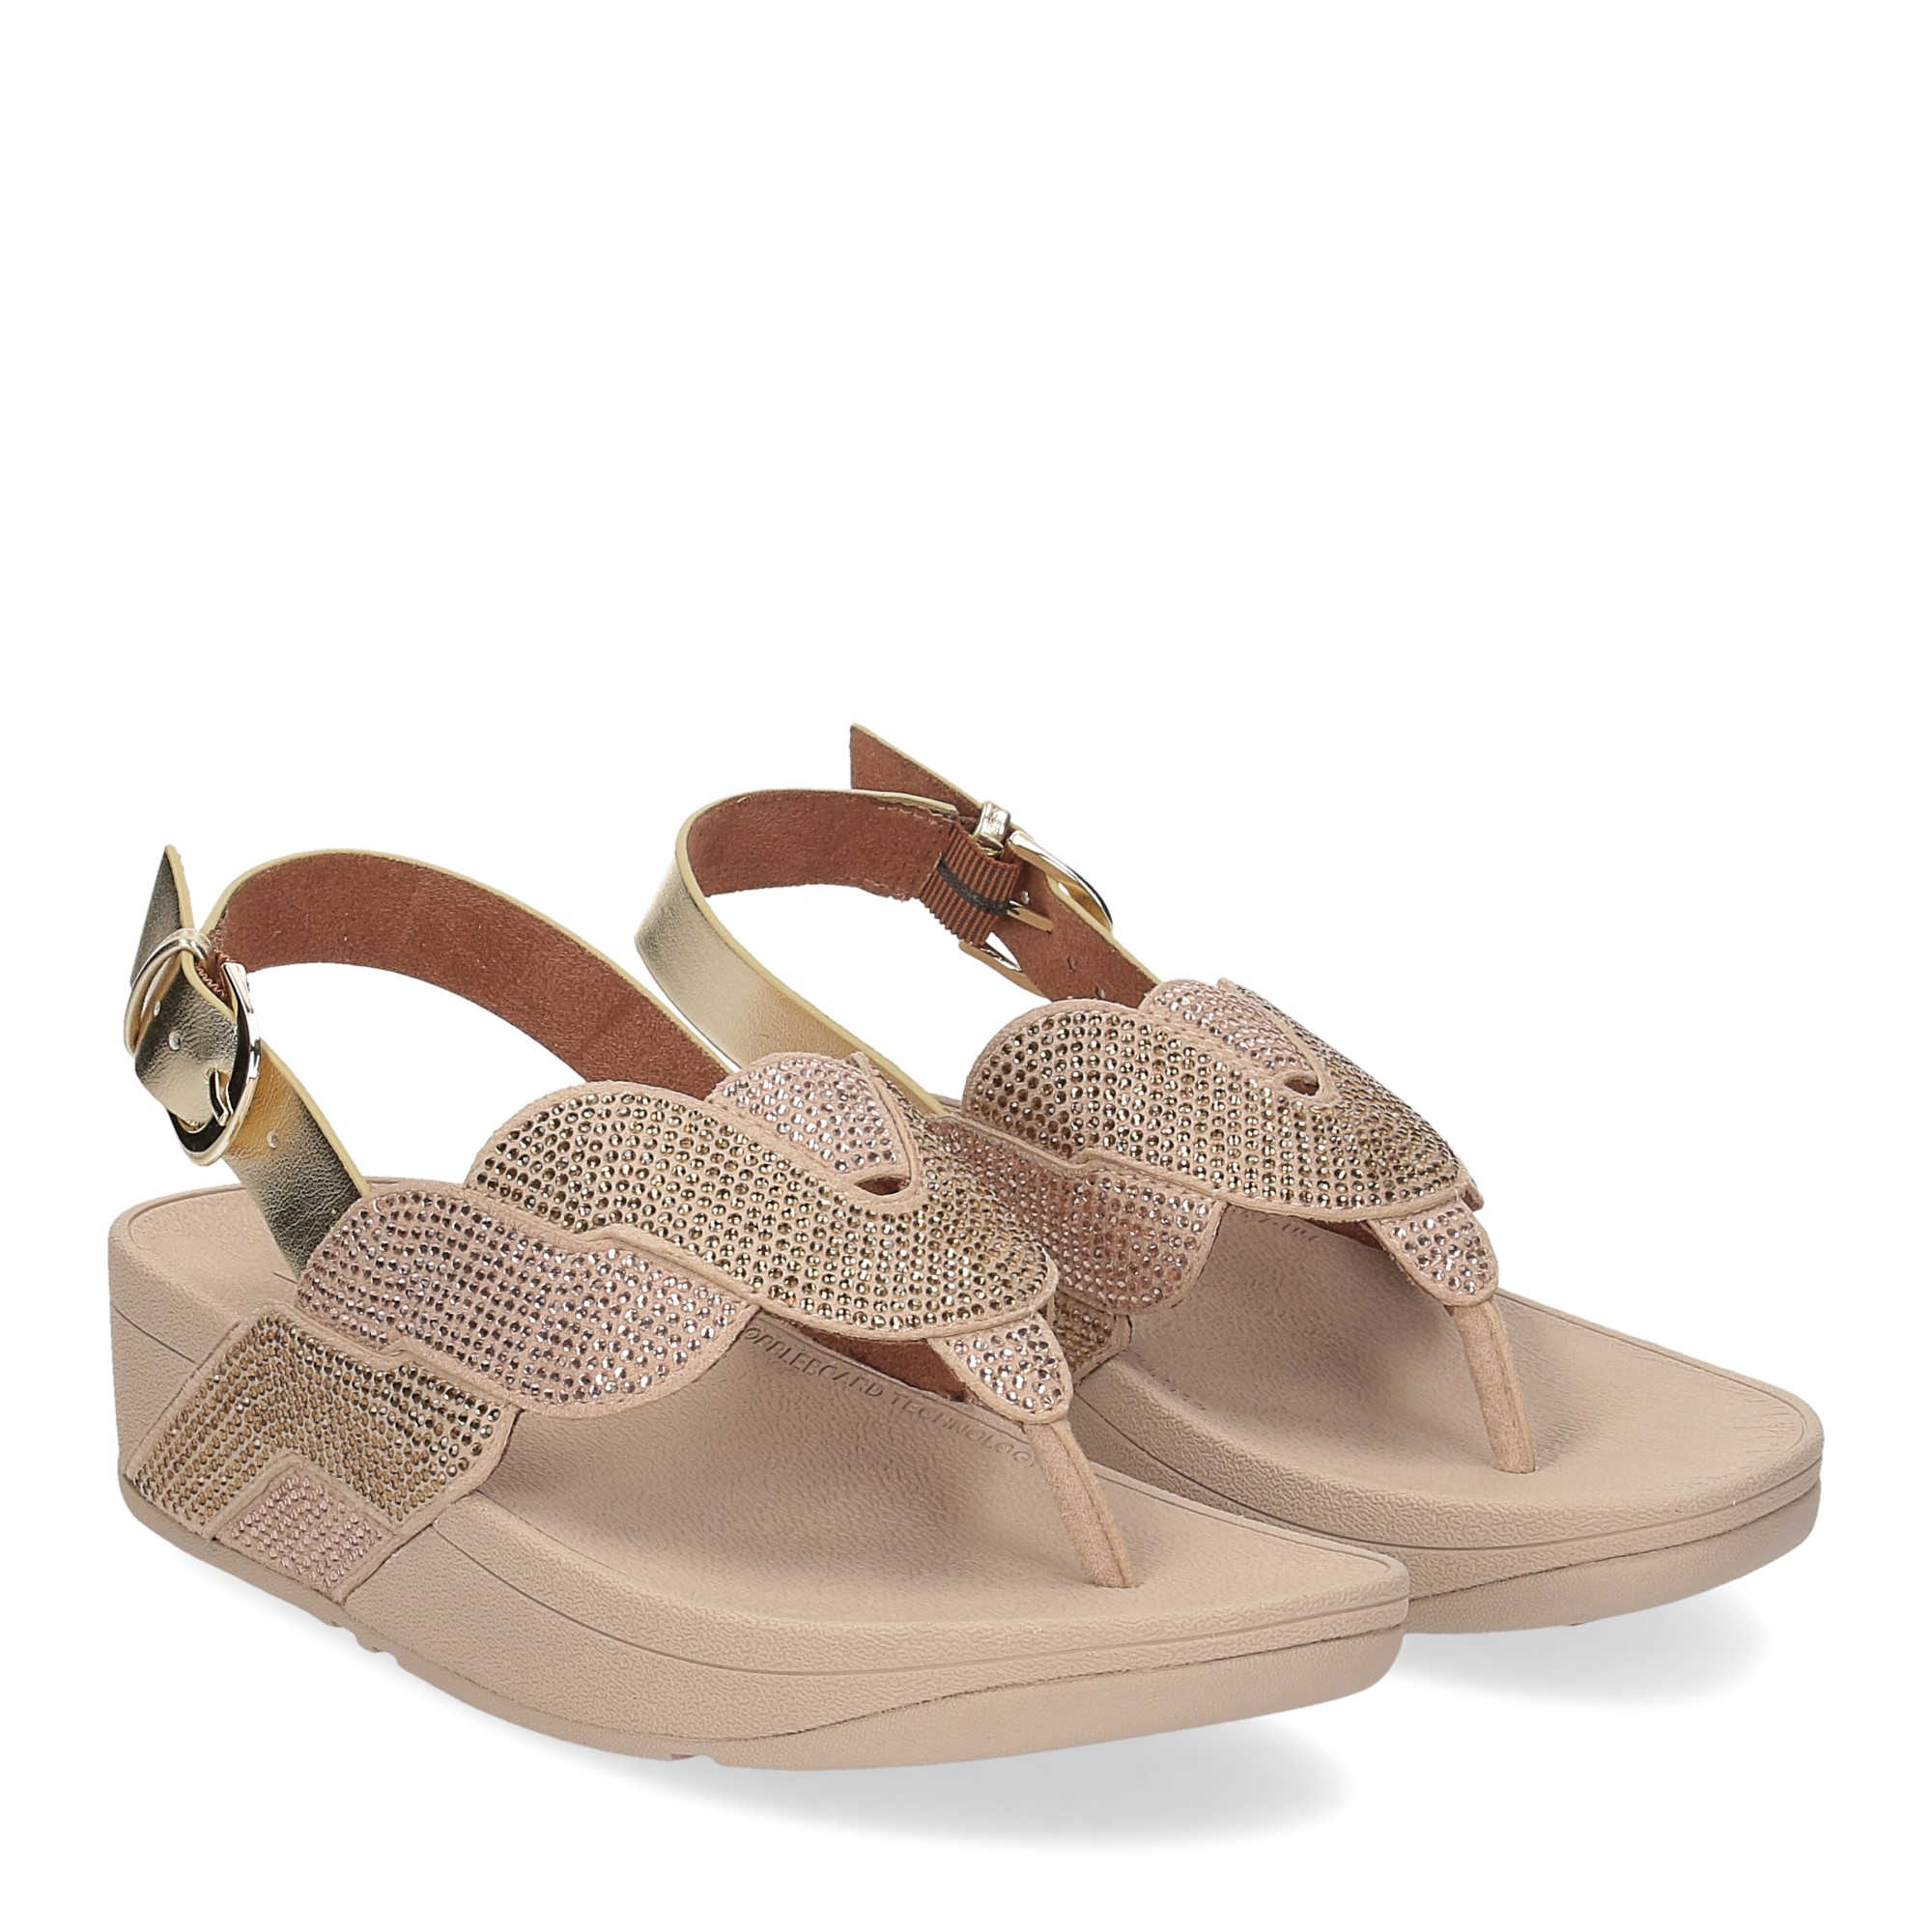 Fitflop Paisley Rope back strap sandals platino